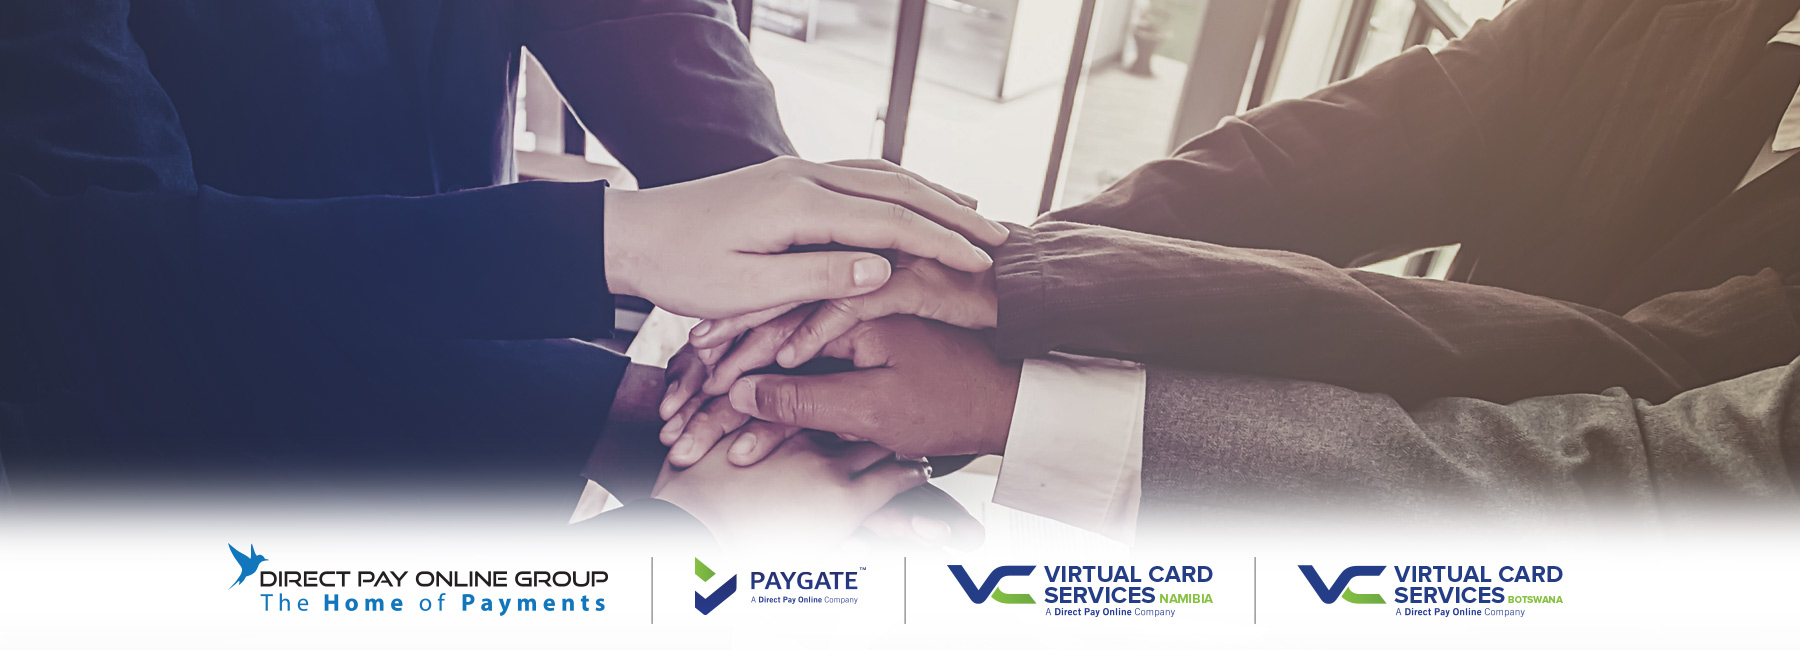 vcs_homepage_banner